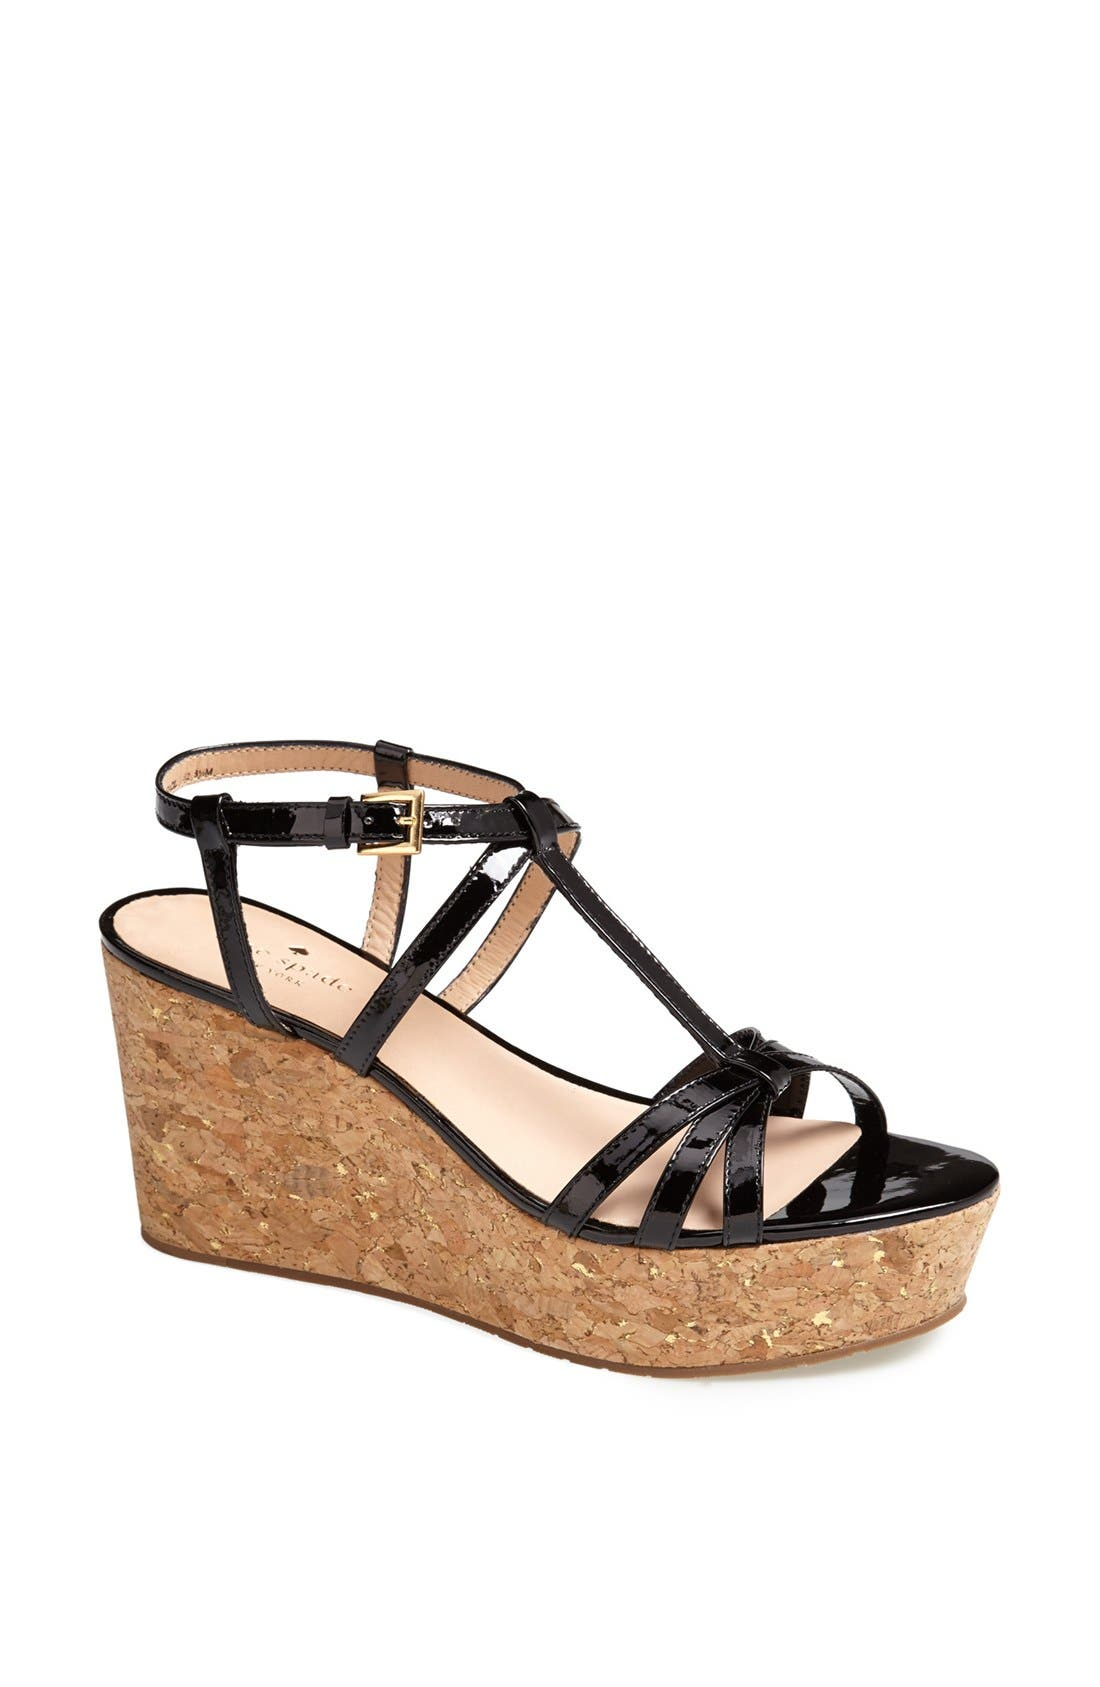 Main Image - kate spade new york 'tropez' wedge platform sandal